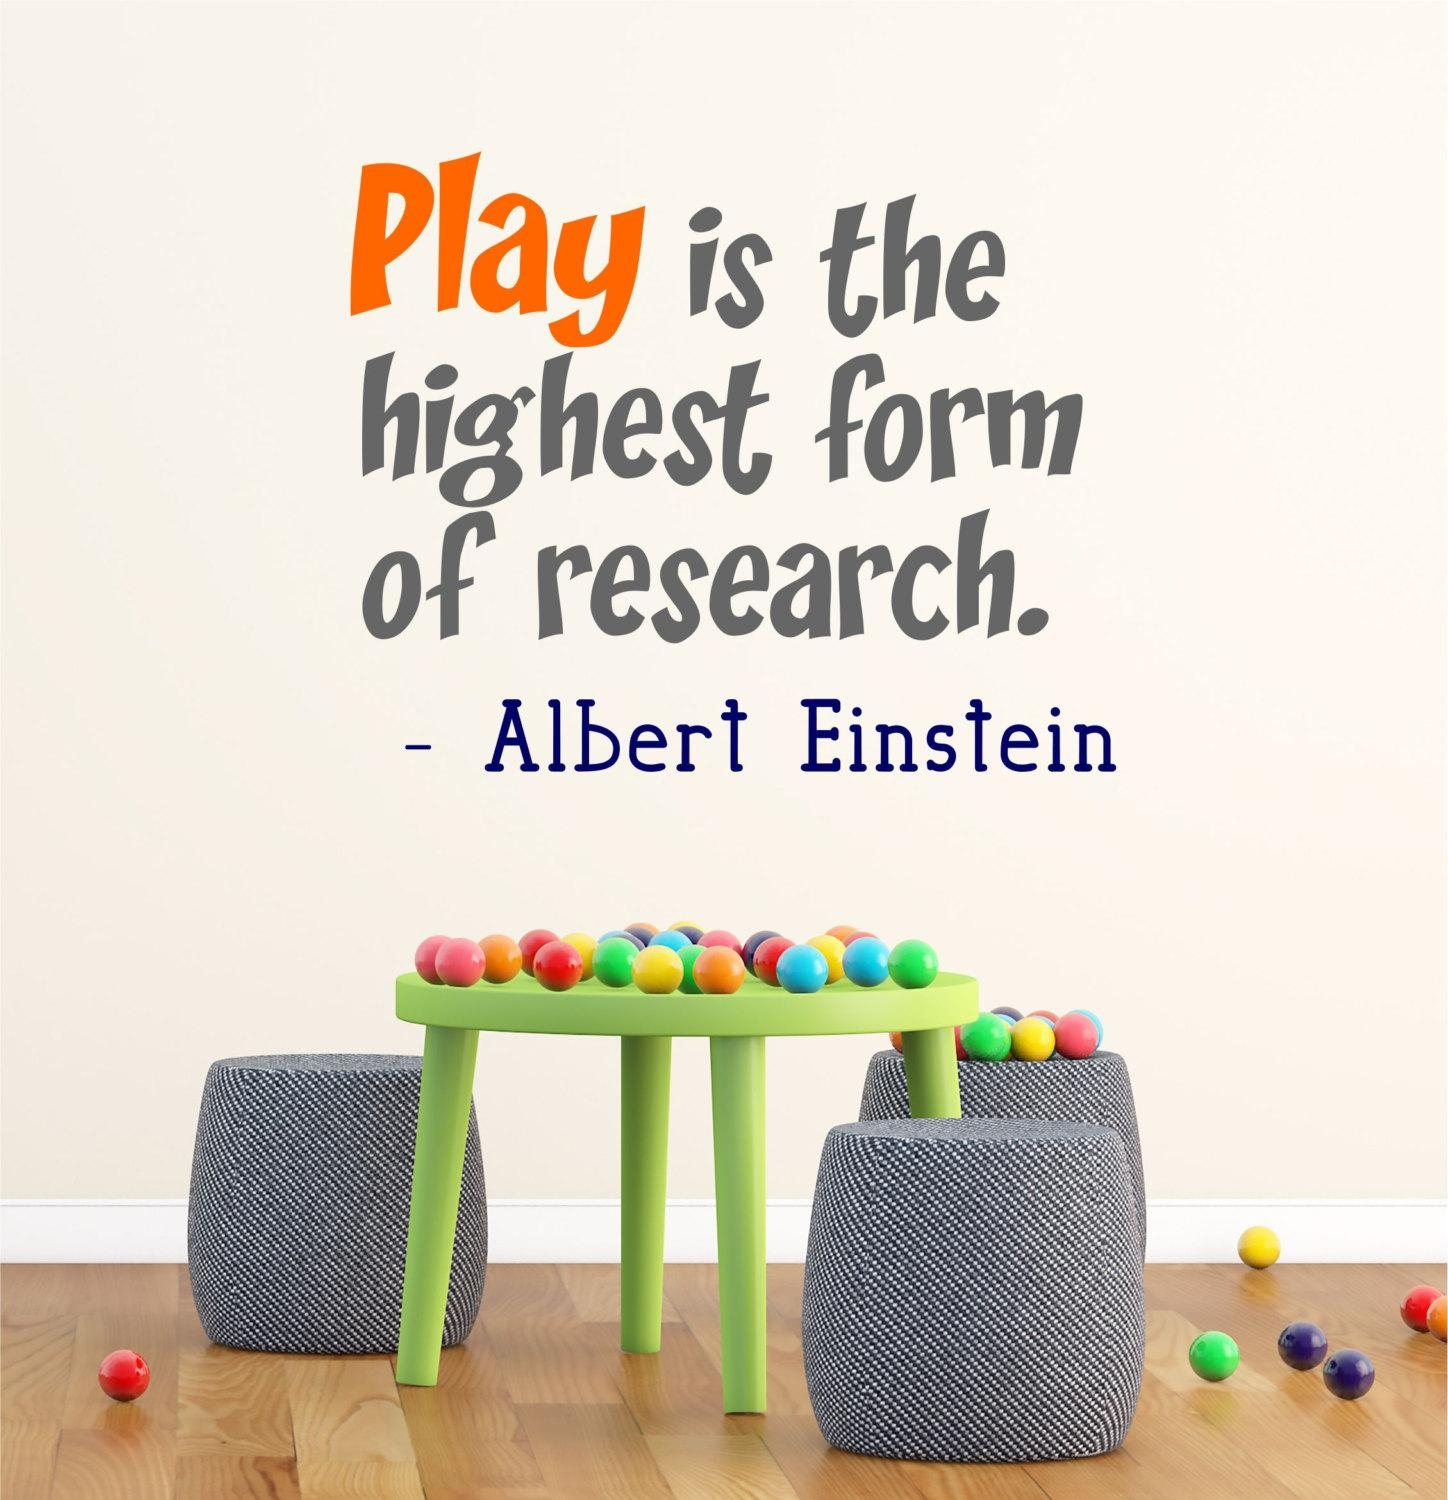 Wall Decals Quotes Einstein ~ Color The Walls Of Your House Pertaining To Preschool Classroom Wall Decals (View 3 of 20)